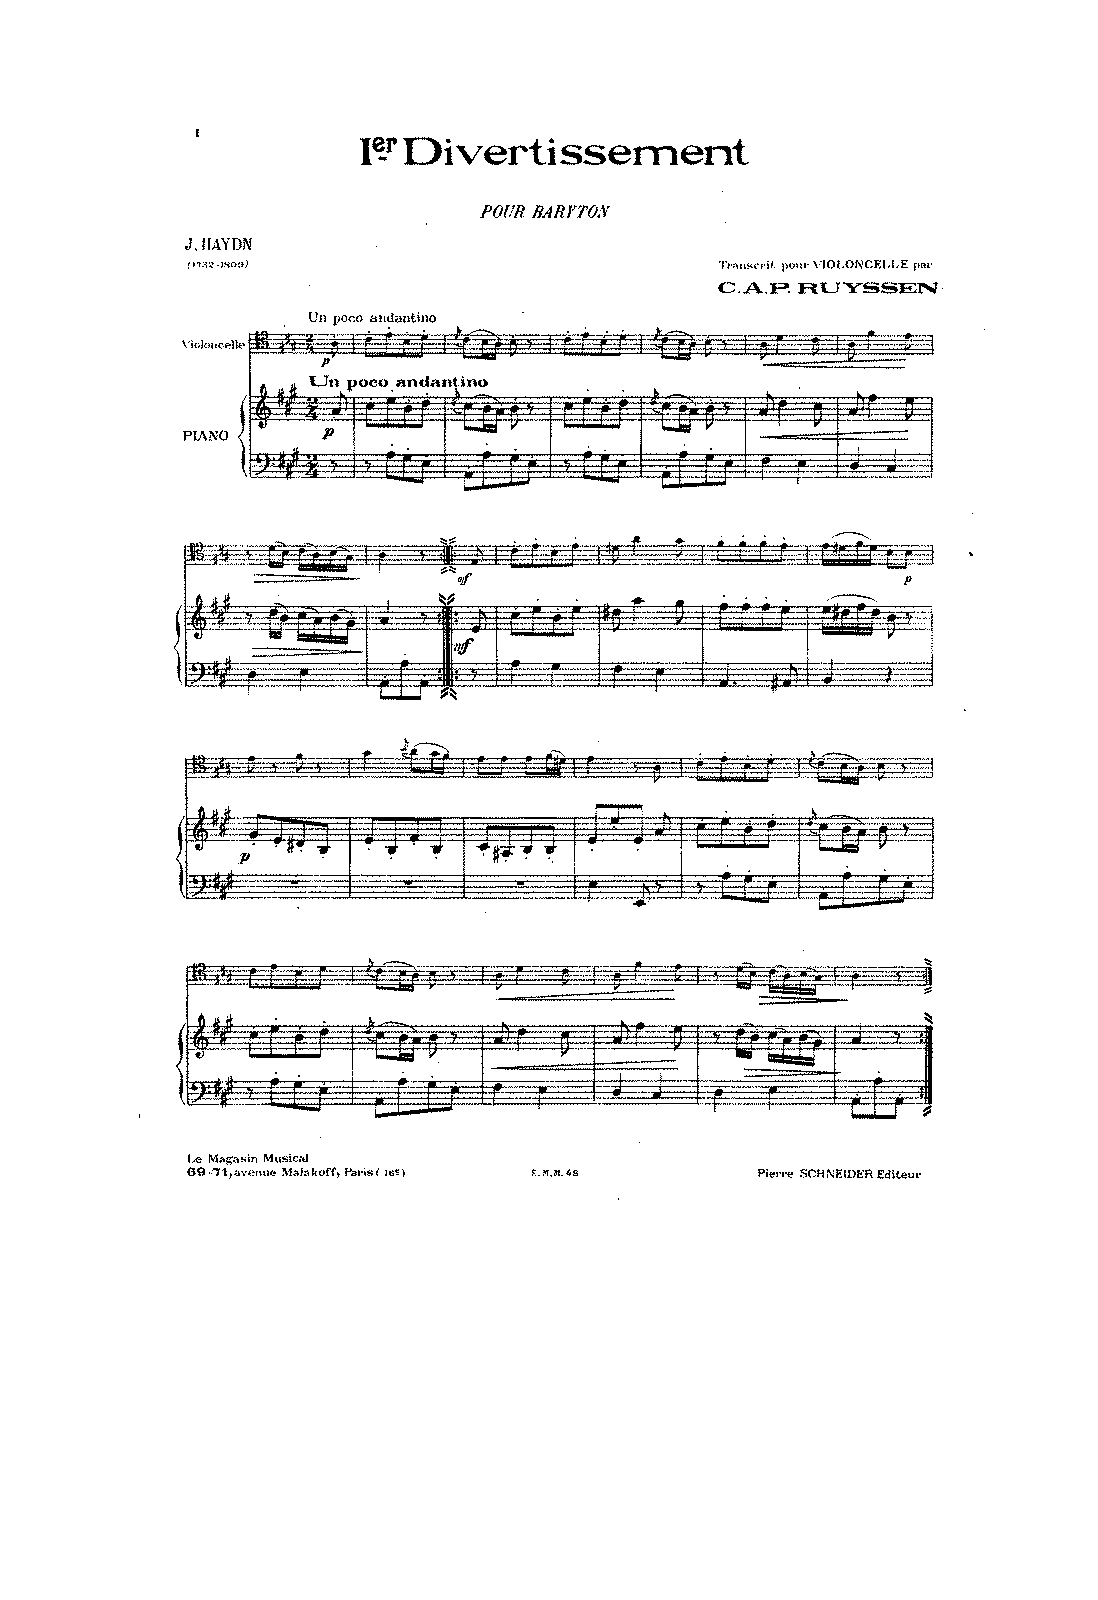 PMLP131910-Haydn - Baryton Trio HobXI 38 A Major arr for Cello and Piano (Ruyssen) score.pdf